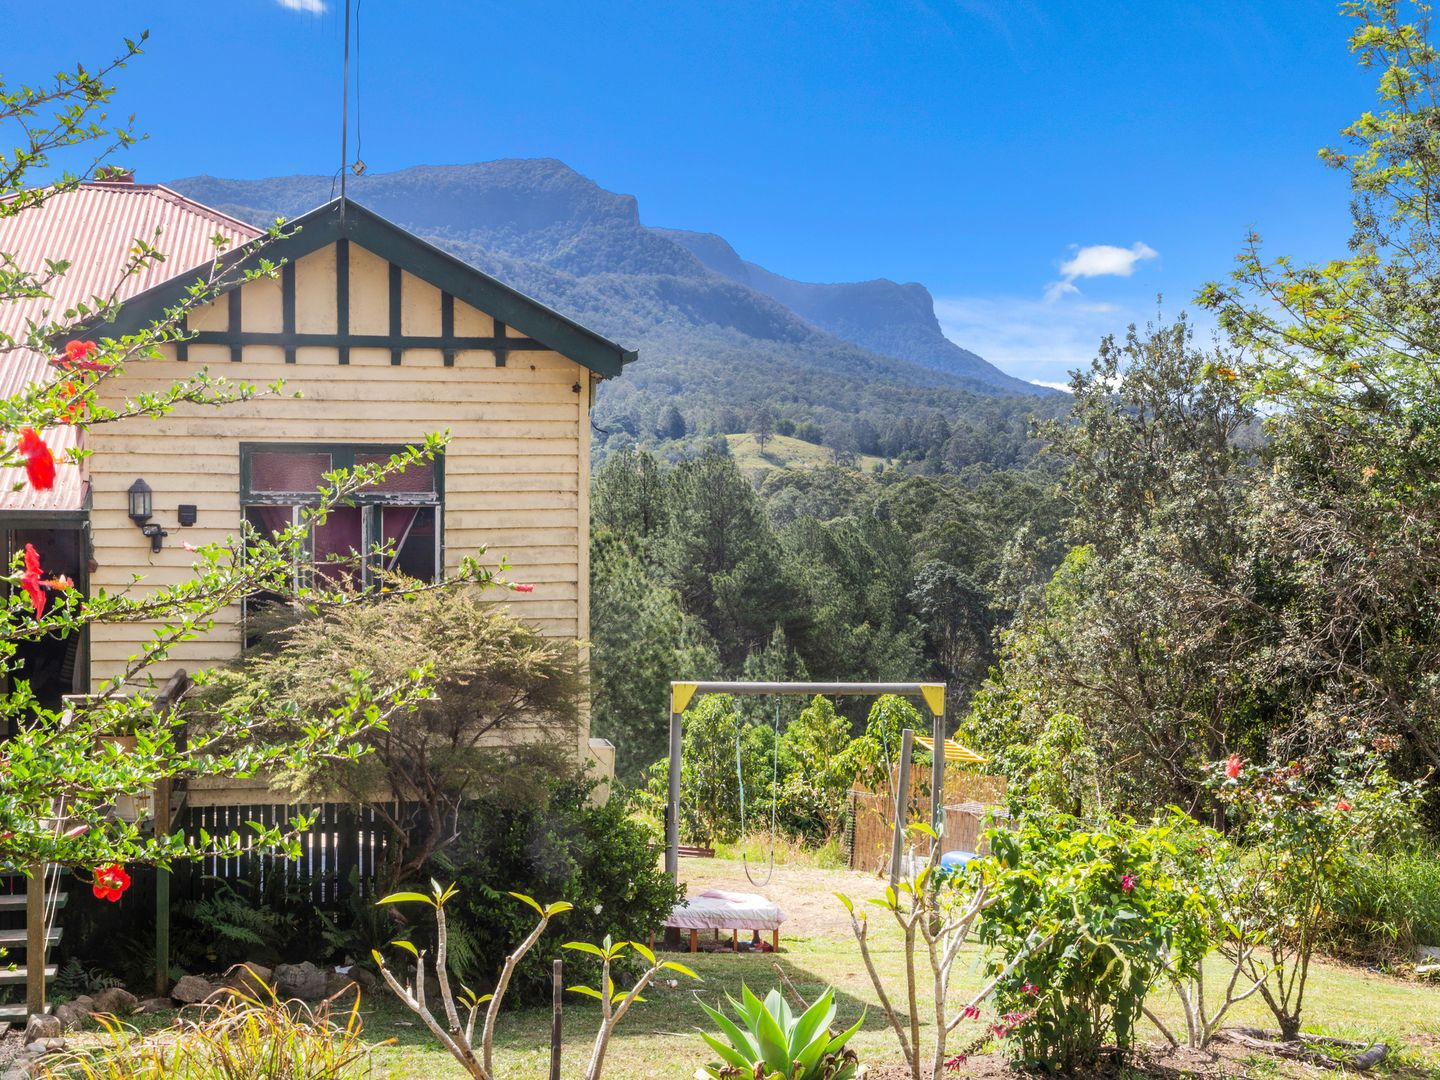 4004 KYOGLE ROAD, Mount Burrell NSW 2484, Image 0